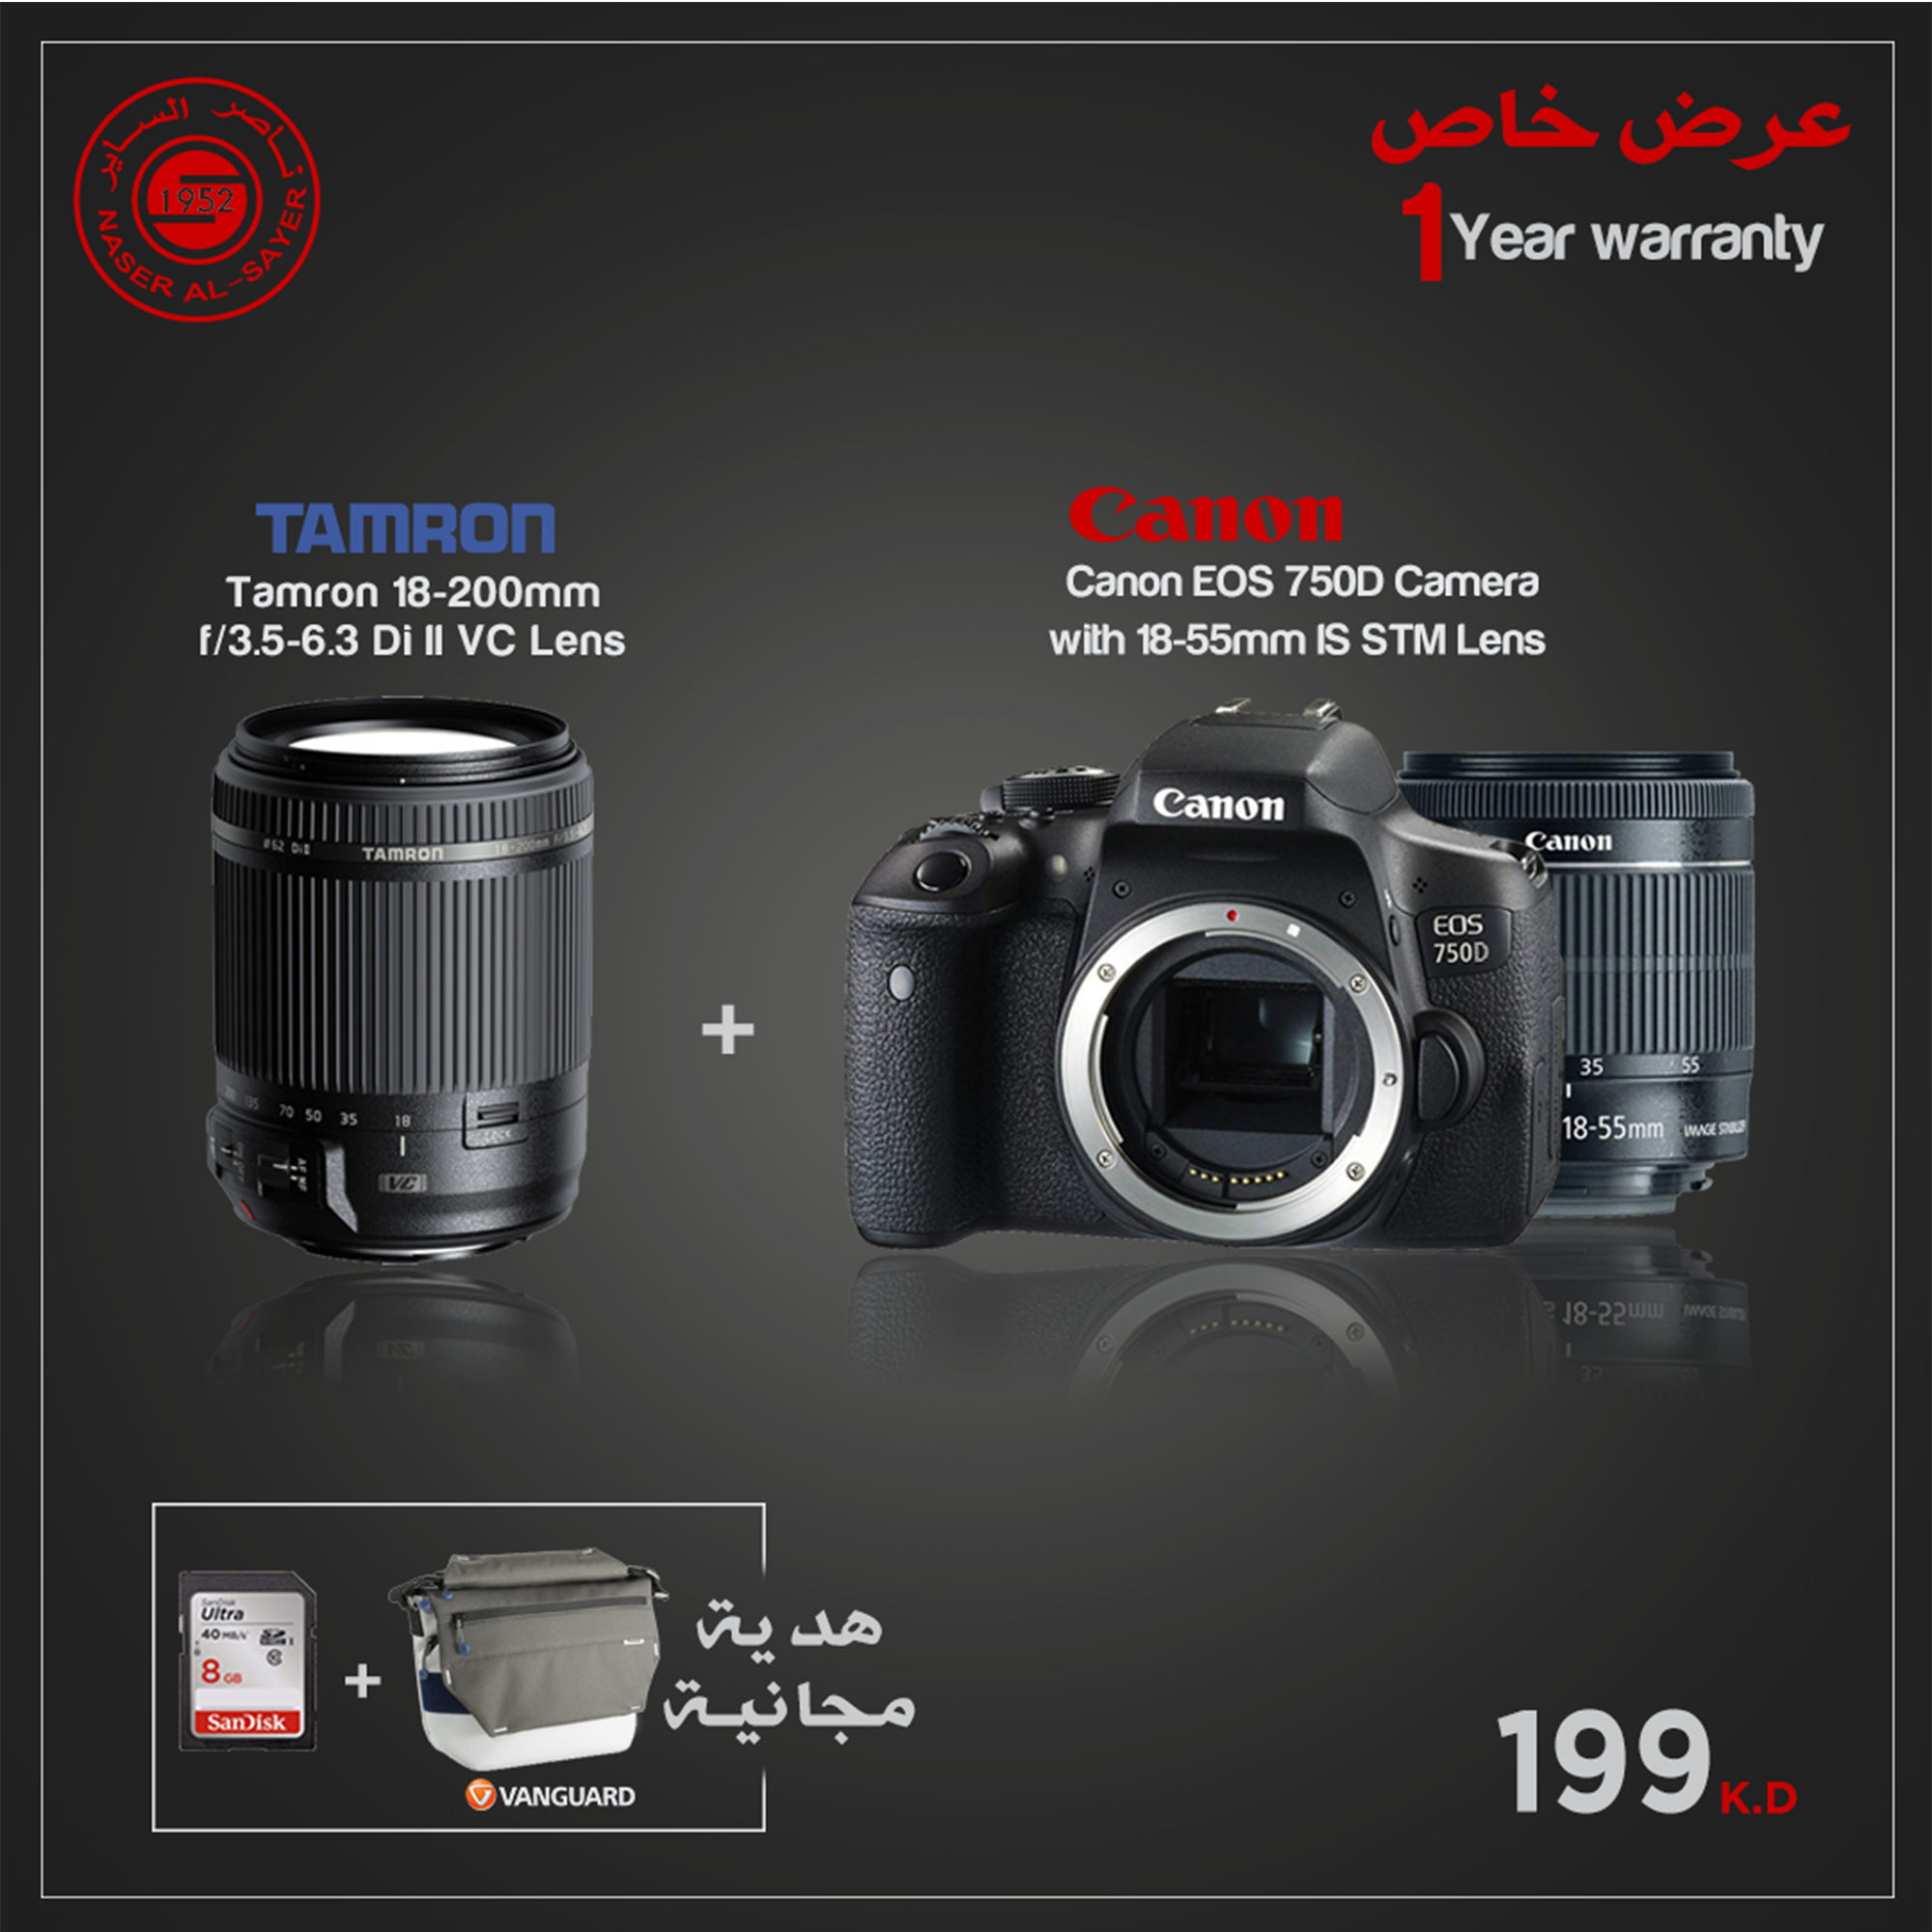 CANON EOS 750D WITH 18-55MM LENS + Tamron 18-200mmf/3.5-6.3 Di II VC Lens & FREE GIFT VANGUARD SYDNEY II 22GY + FREE 8GB MEMORY CARD